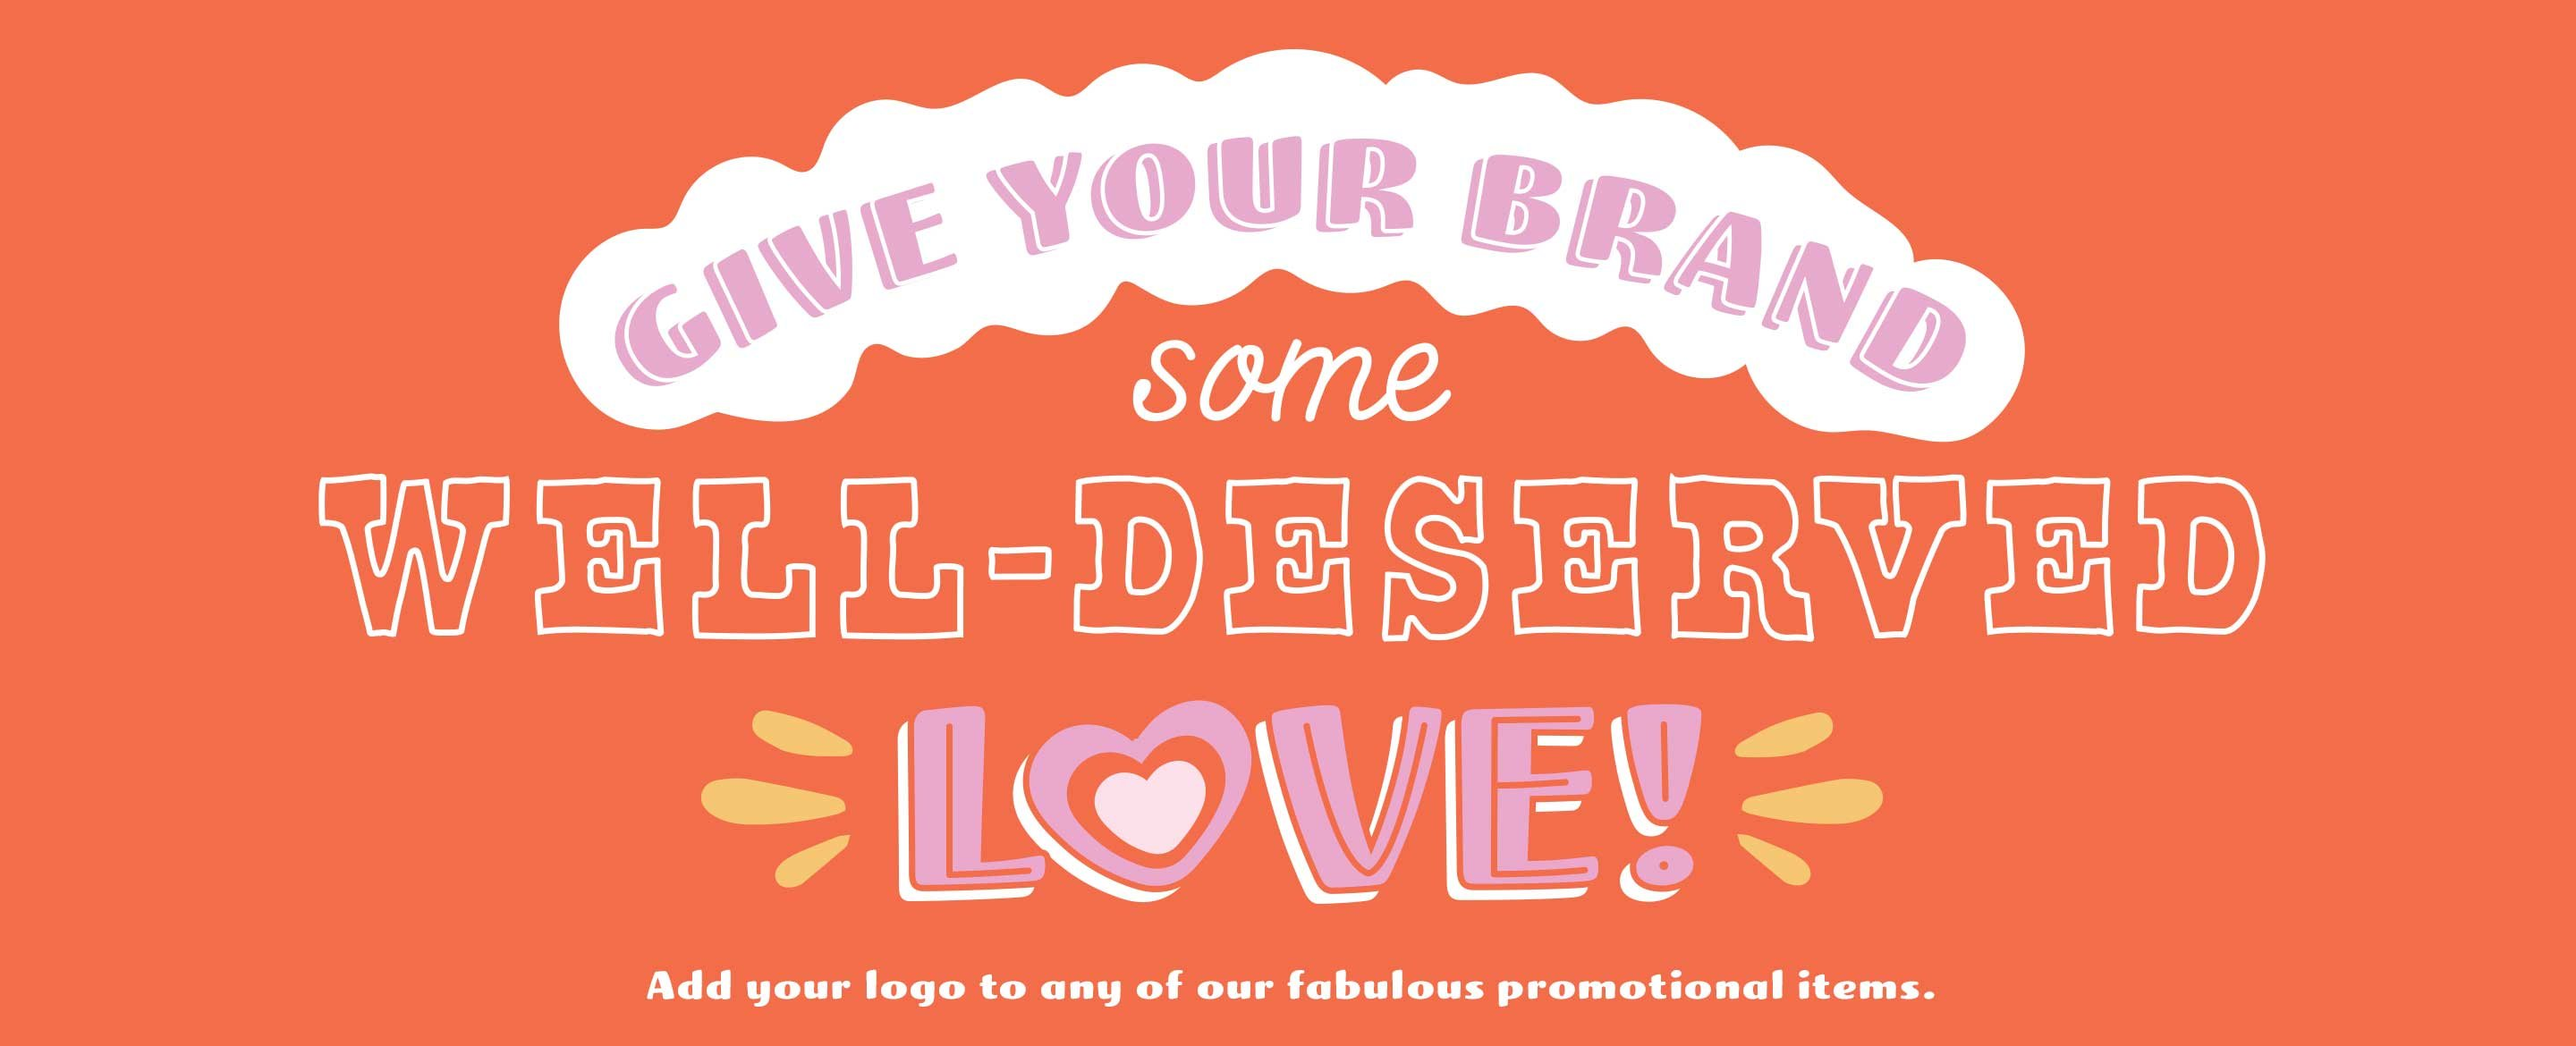 Baudville promotional items shop all page header